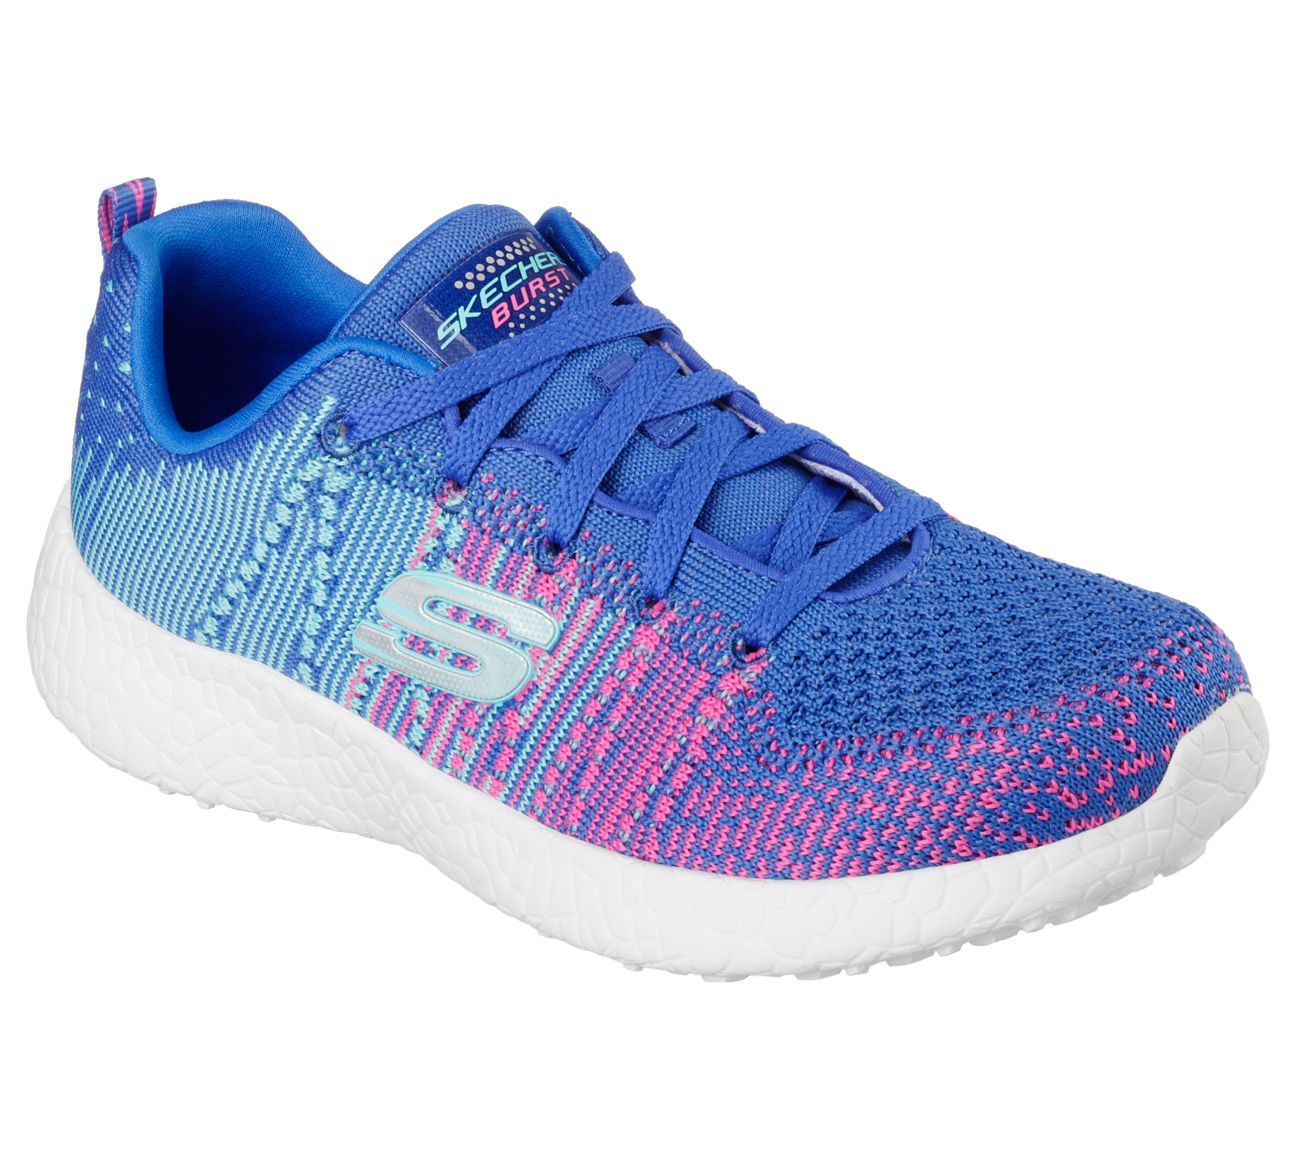 1fda90b9770 12437 Blhp Blue Pink Skechers Shoes Burst Memory Foam Women'S Knit Sport  Comfort